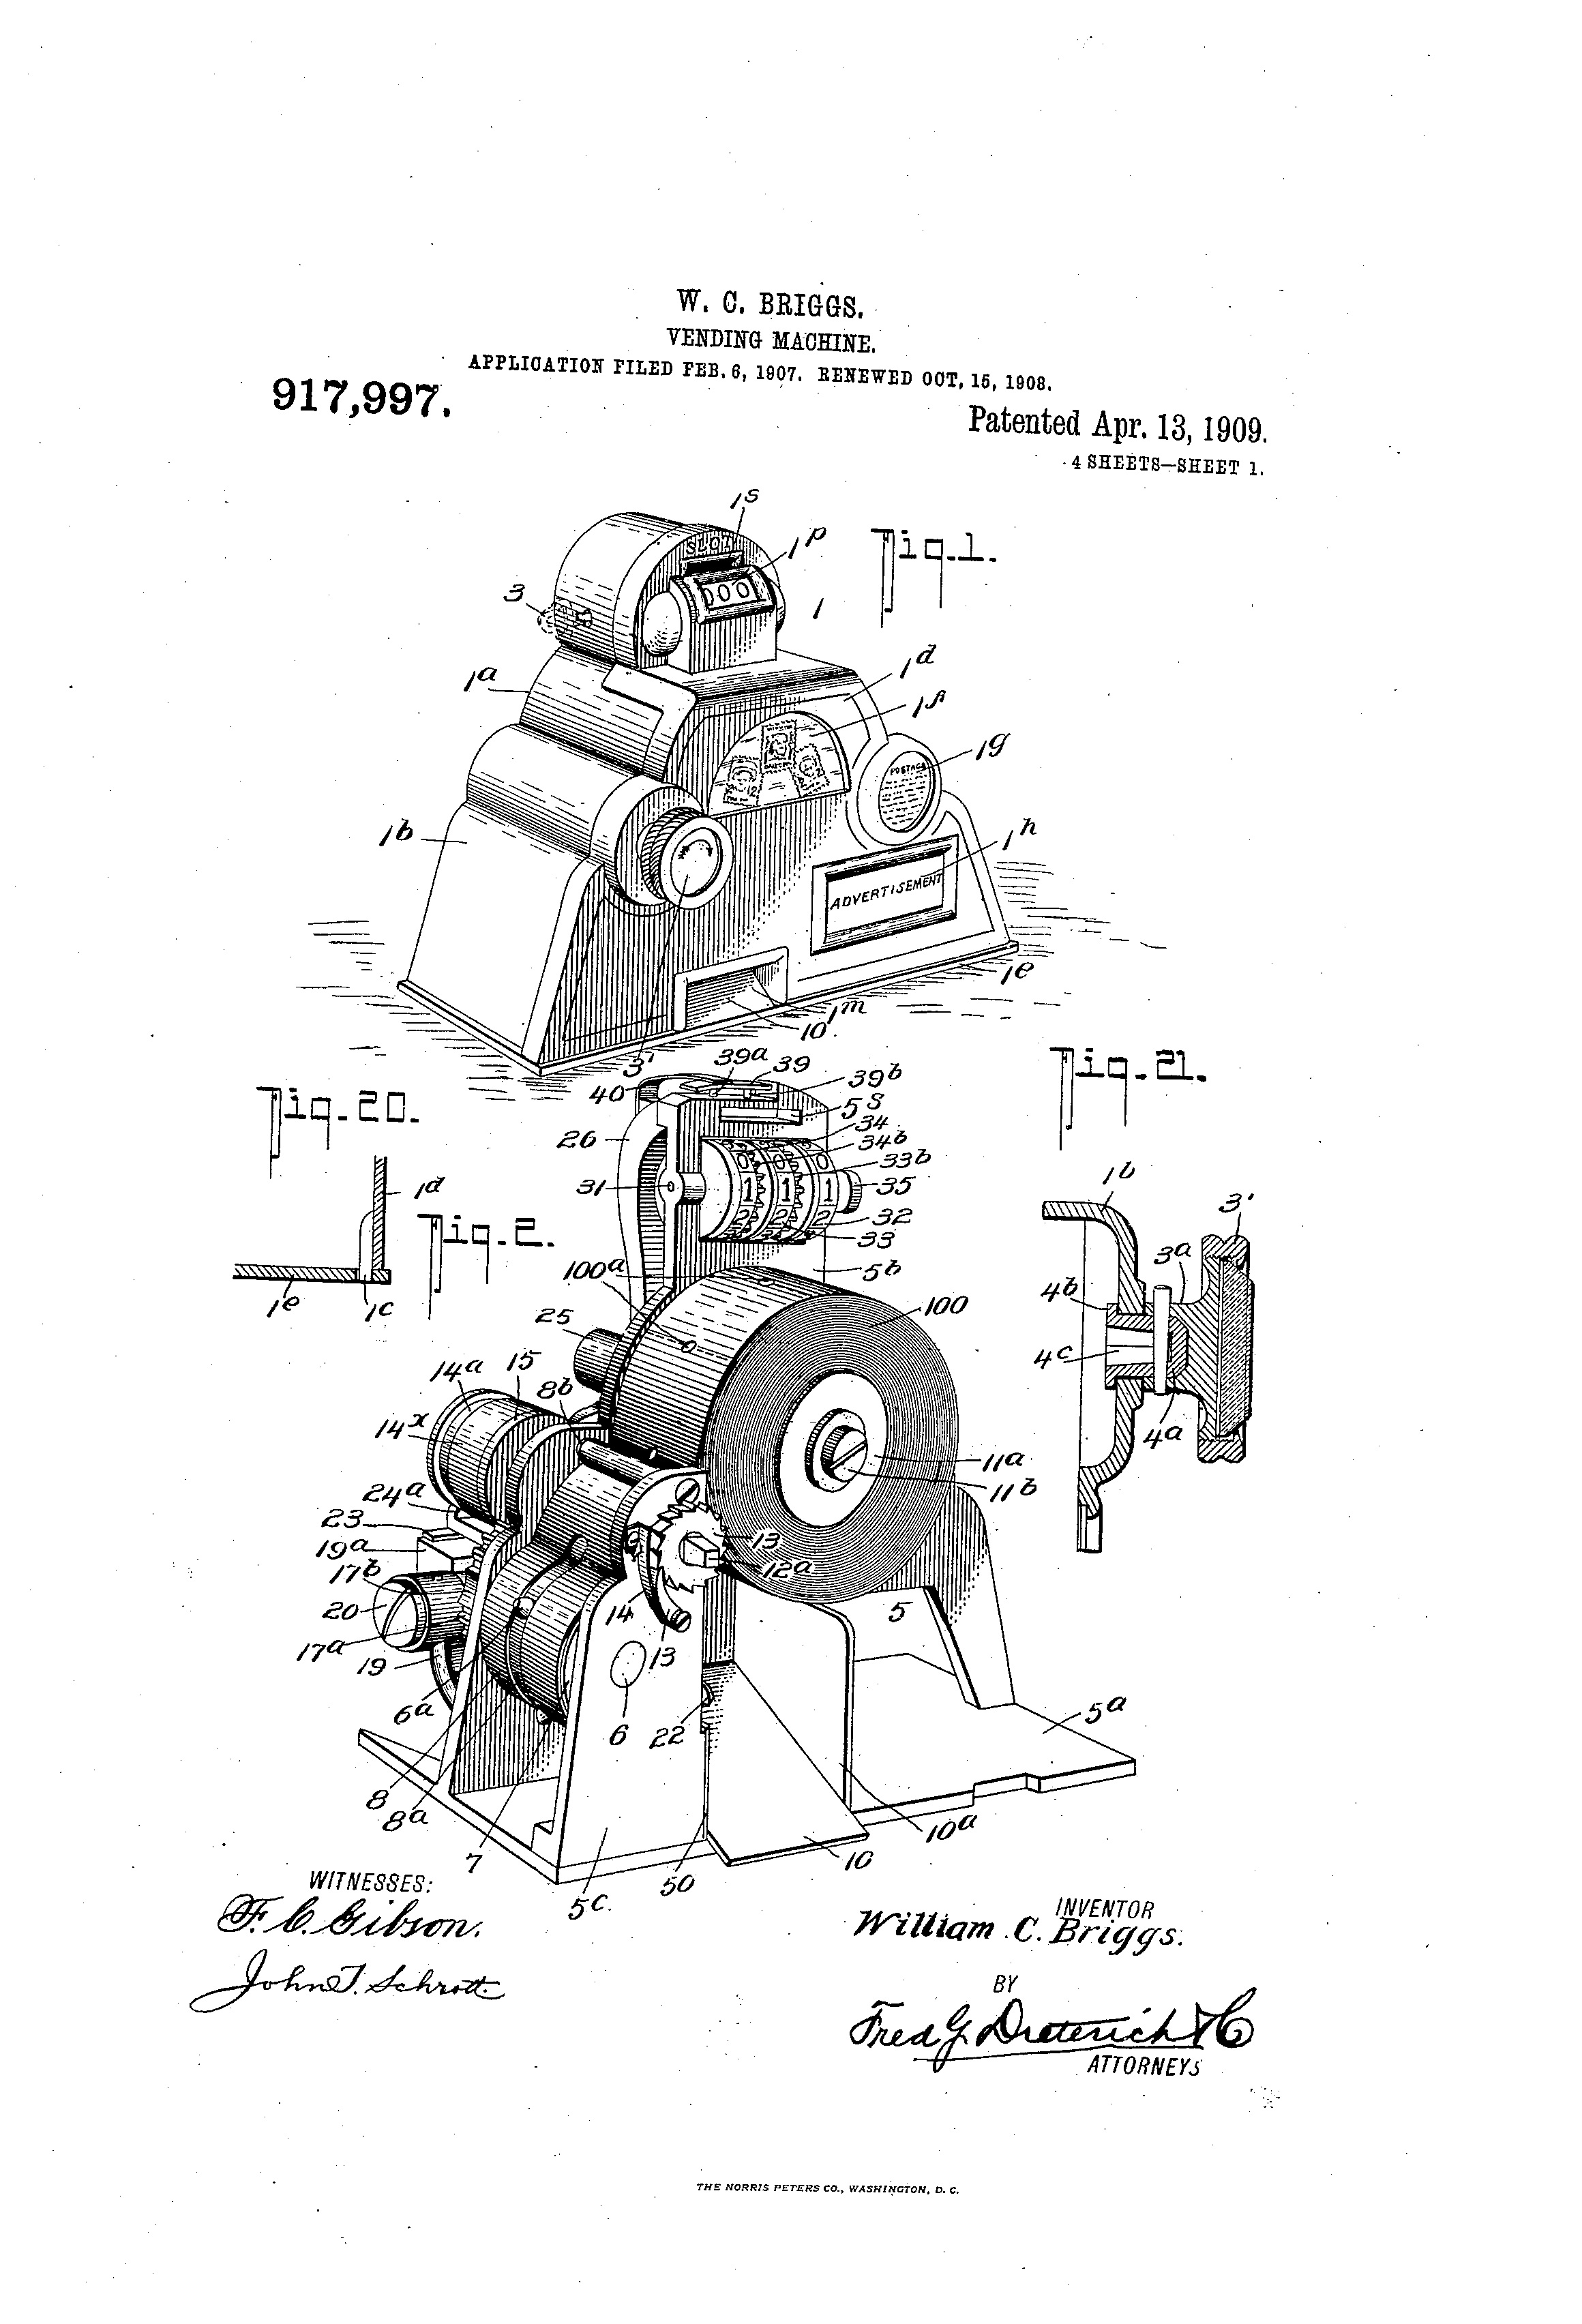 Drawings from the Briggs patent. Image from the U.S. Patent and Trademark Office.